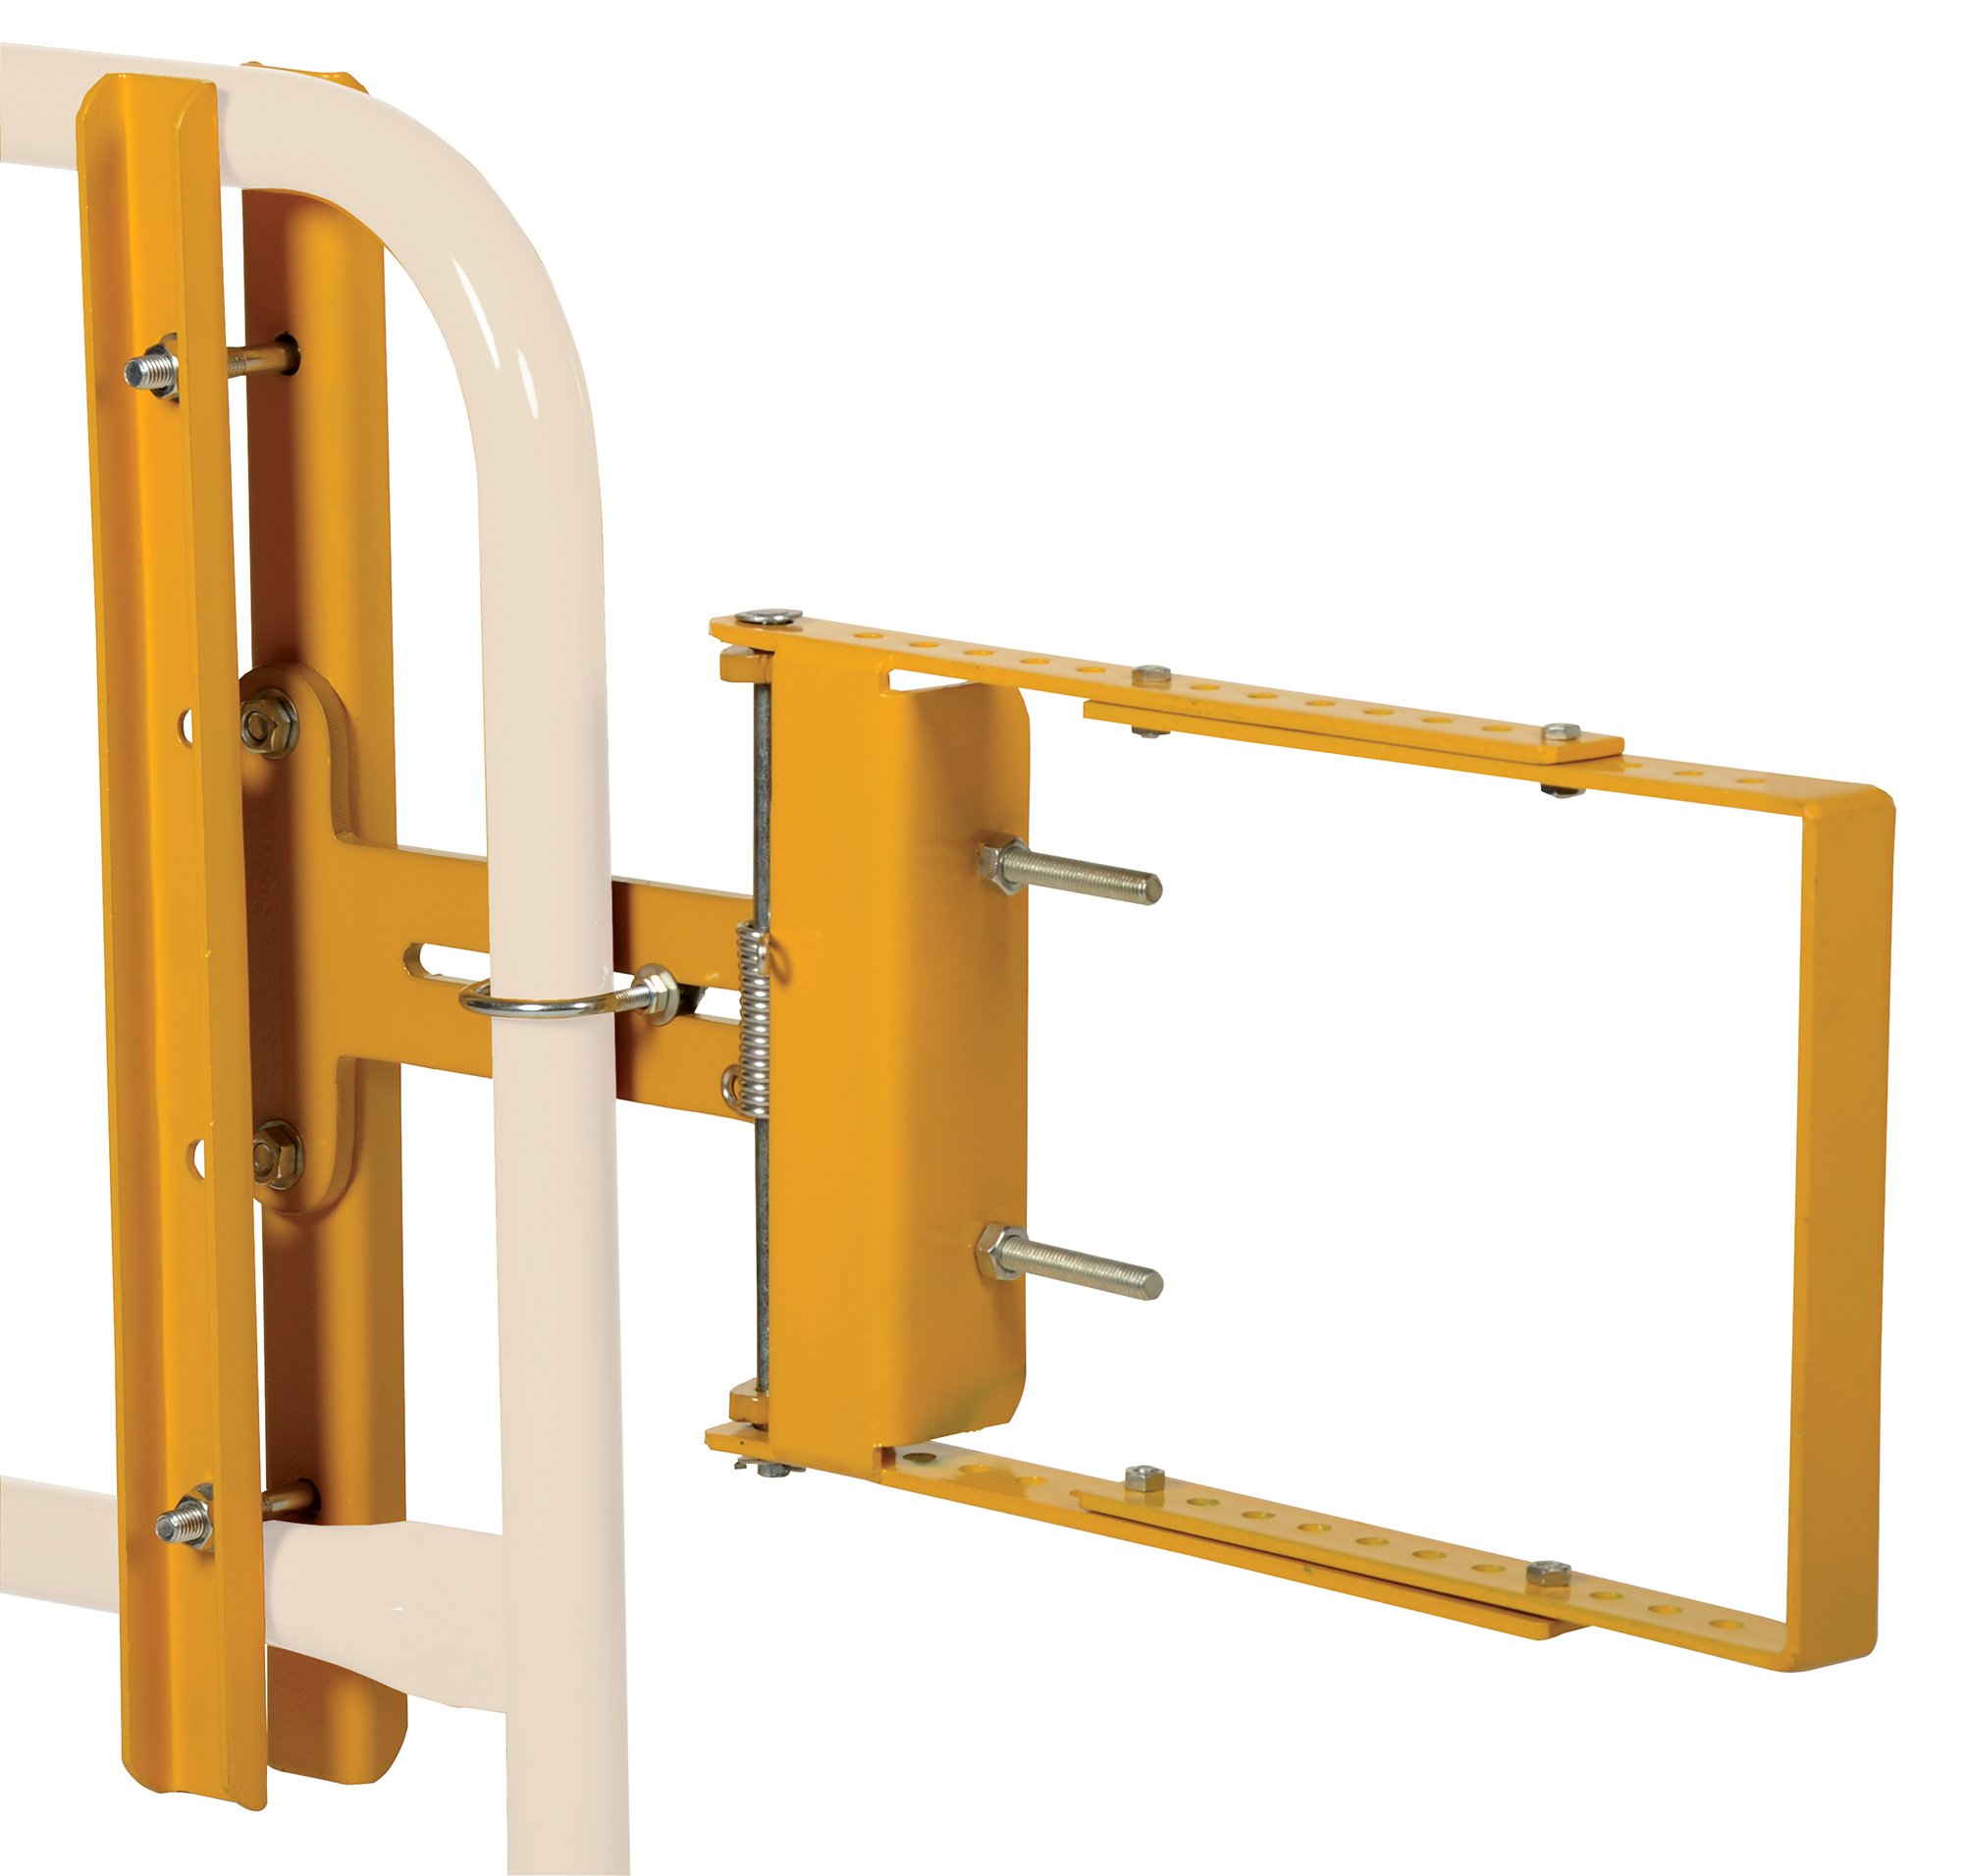 Vestil SPG-26-Y Self-Closing Steel Gate with Yellow Powder Coat Finish, 16'' - 26'' Opening Width, 12'' Height